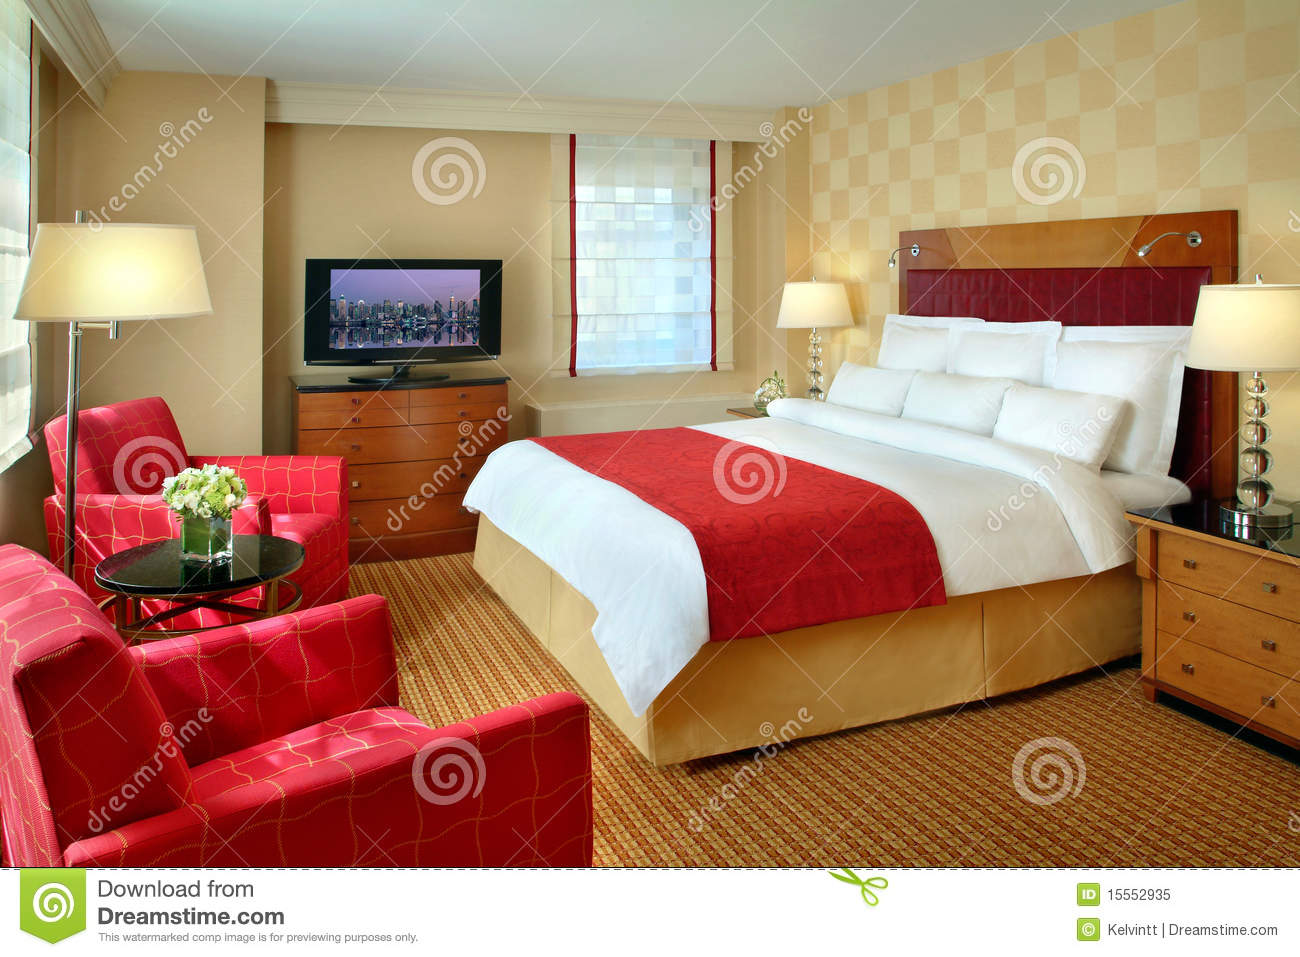 Hotel room interior royalty free stock photo image 15552935 for Hotel room interior images